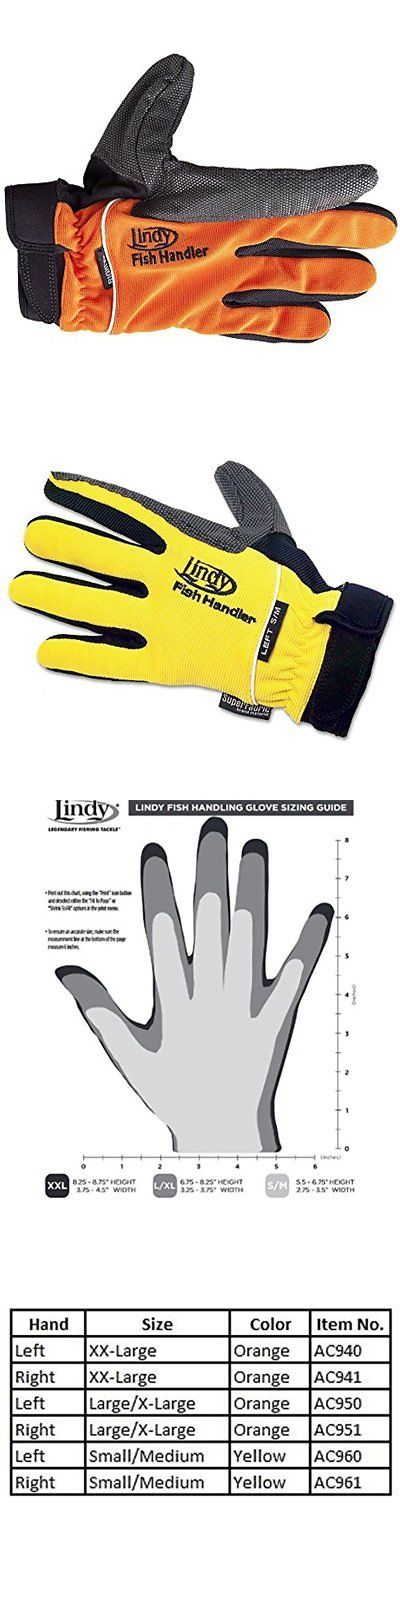 Gloves 65974: Lindy Fishing Gloves Fish Handling Left Hand Glove, Xx-Large -> BUY IT NOW ONLY: $37.36 on eBay!